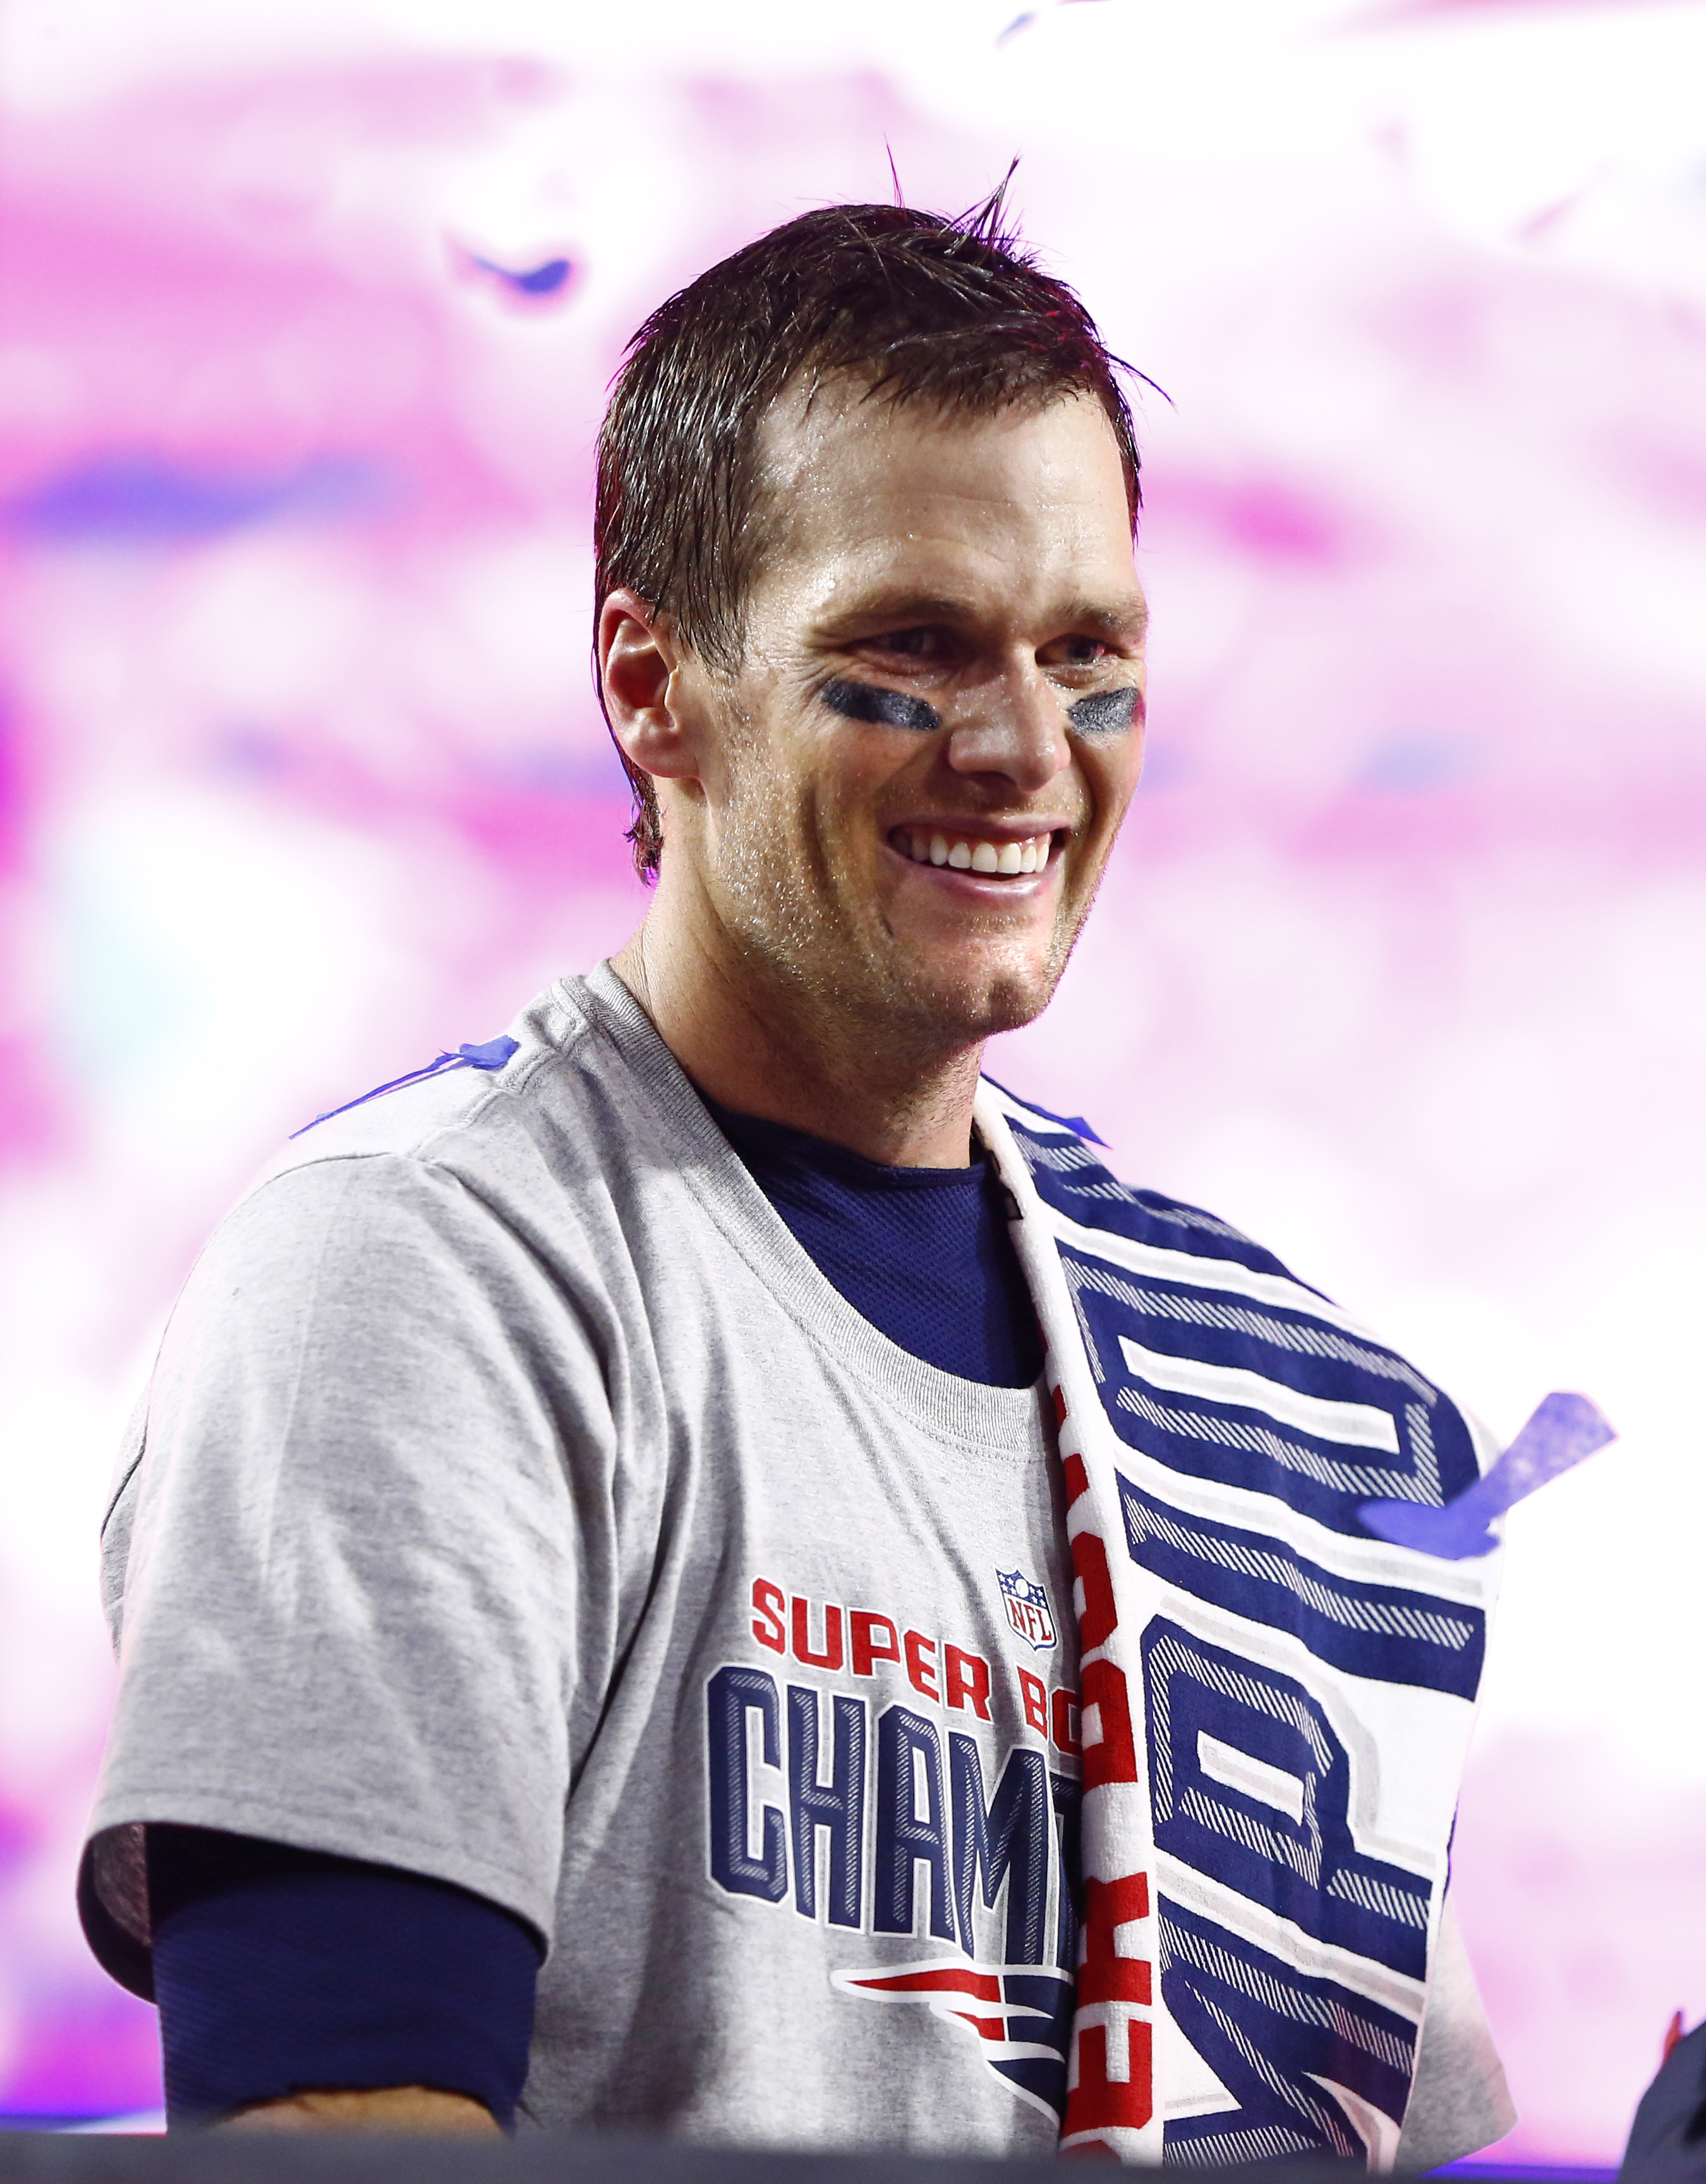 Unnamed bidder drops $40,000 on one of Tom Brady's deflated balls